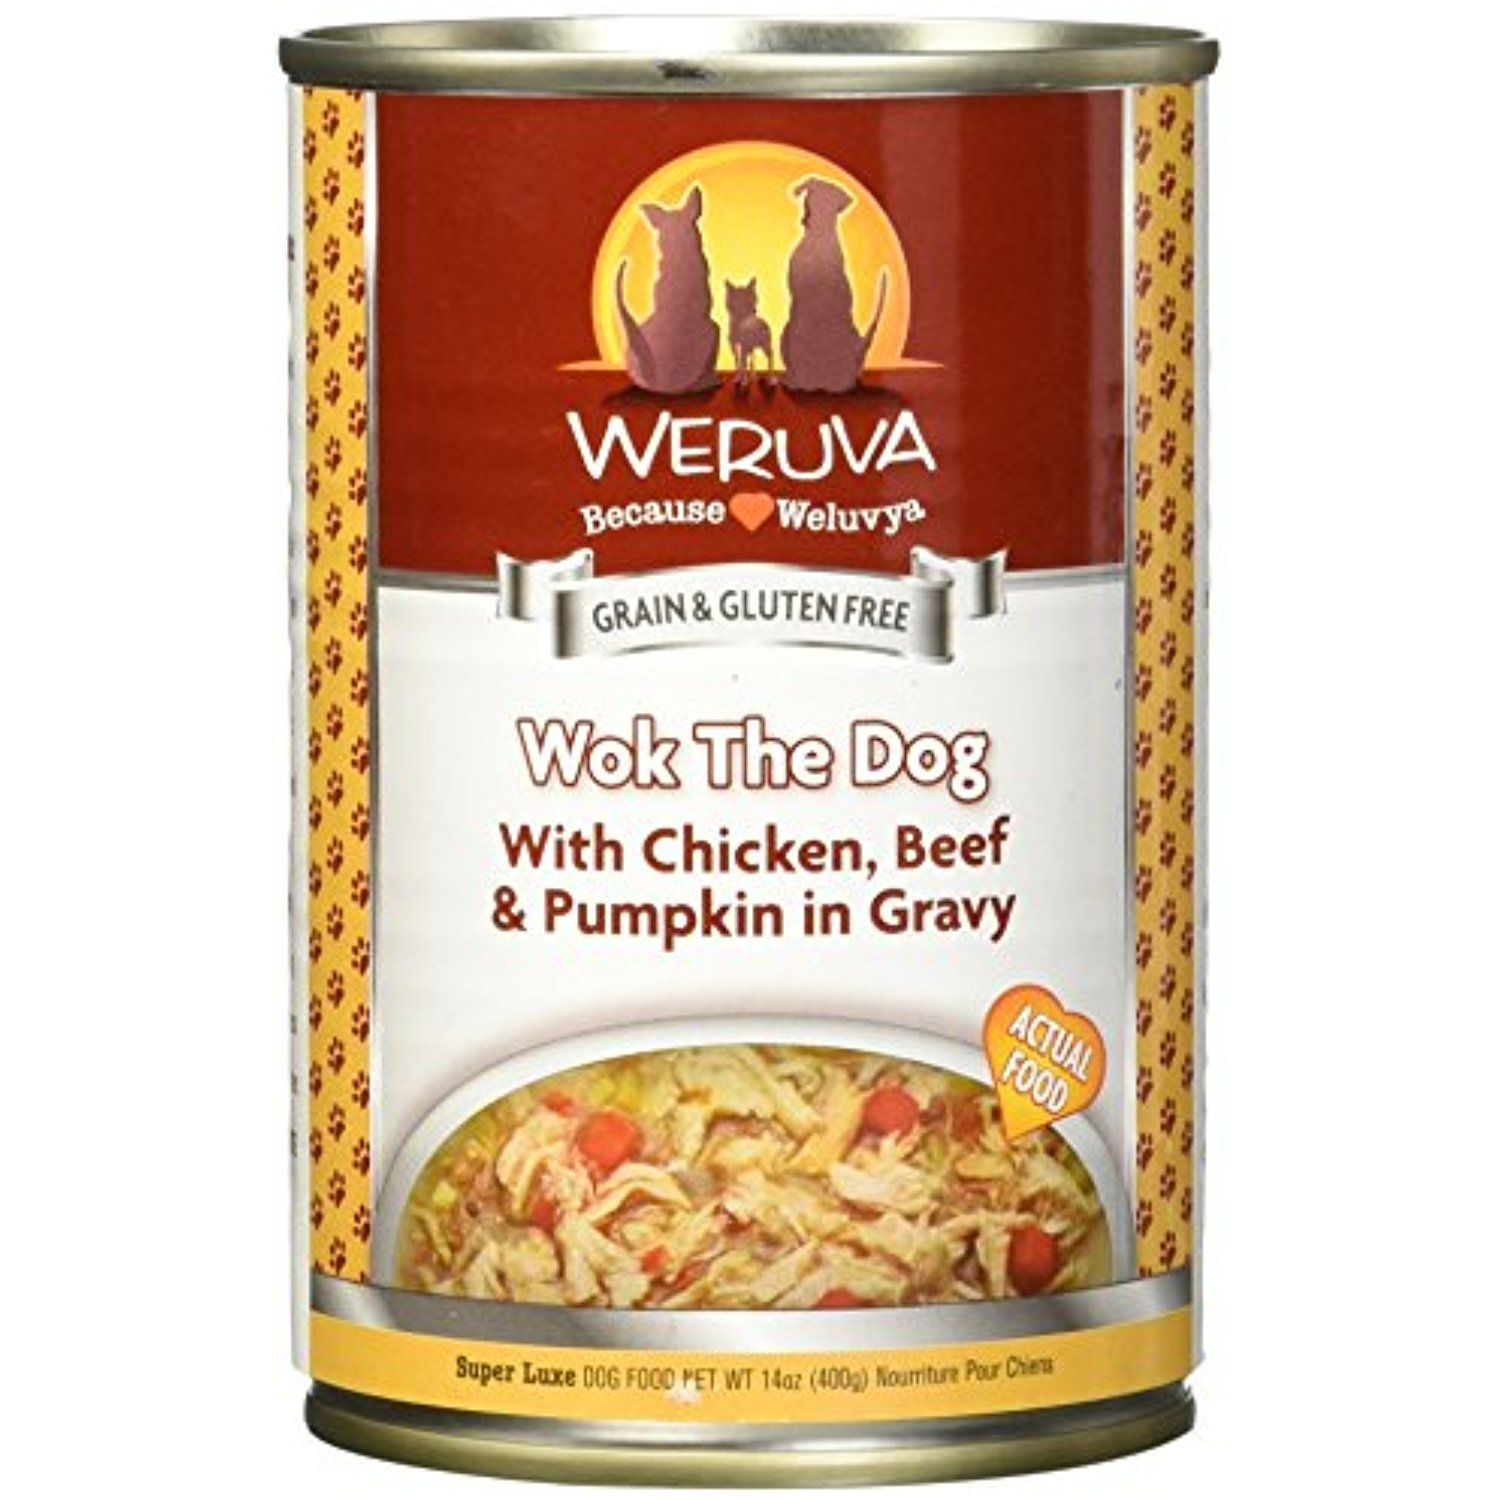 Weruva Wok The Dog Canned Dog Food You Can Click Image For More Details This Is An Affiliate Link And I Rec Dog Food Recipes Canned Dog Food Wet Dog Food